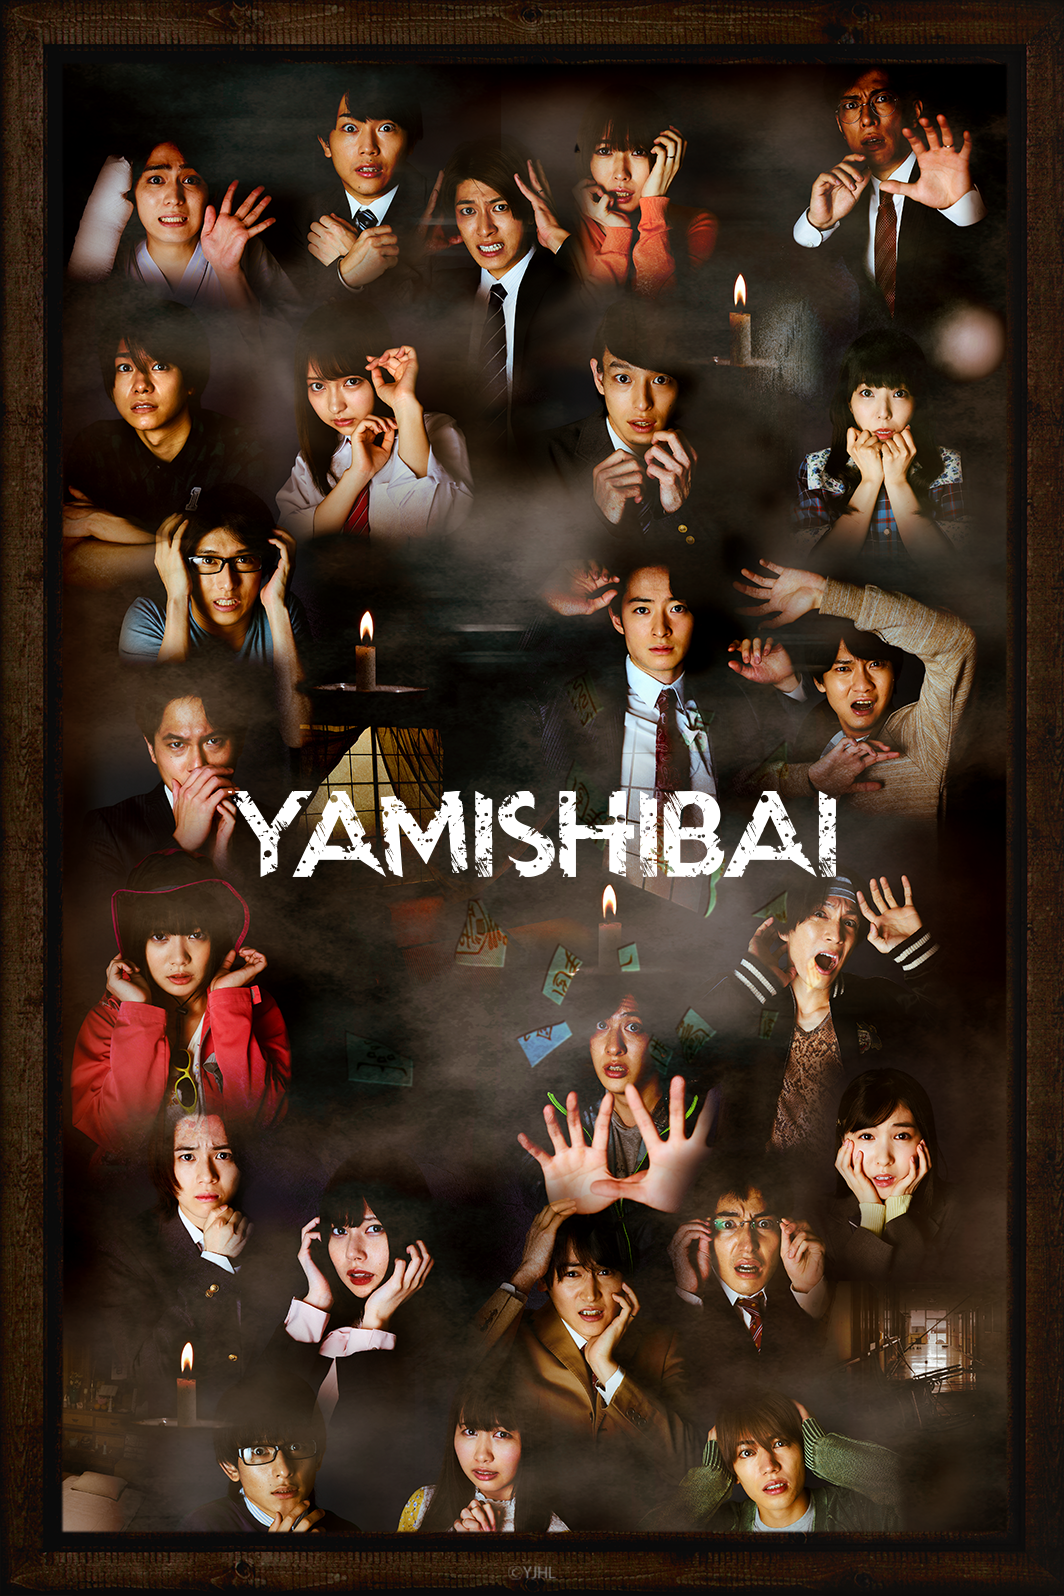 Yamishibai: Japanese Ghost Stories live-action